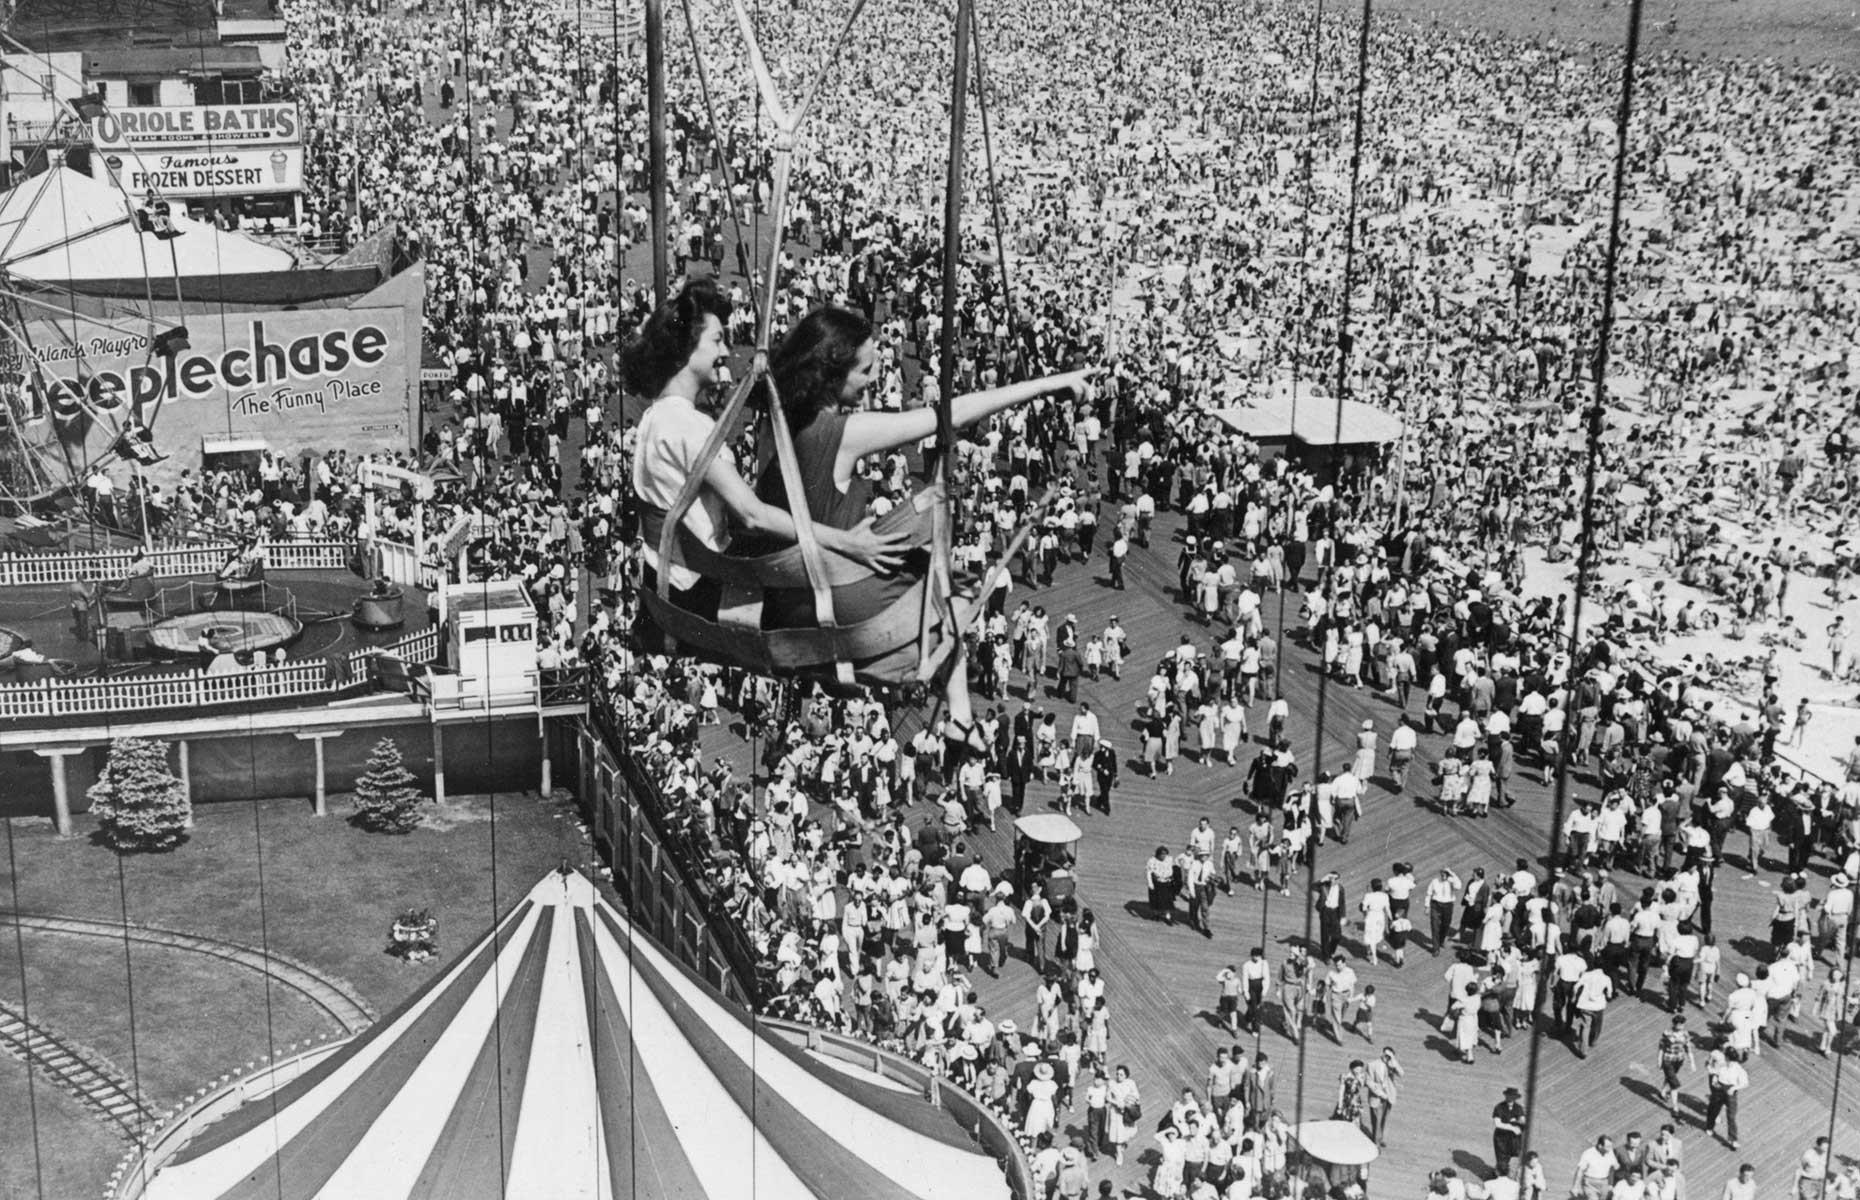 Slide 3 of 35: Coney Island continued to boom through the first half of the 20th century, with its seaside location, colorful attractions and daring rides the perfect mix for pleasure seekers. You can barely see the beach or the boardwalk for people in this 1946 shot, which also shows beaming vacationers on Coney's now defunct Parachute Jump ride.